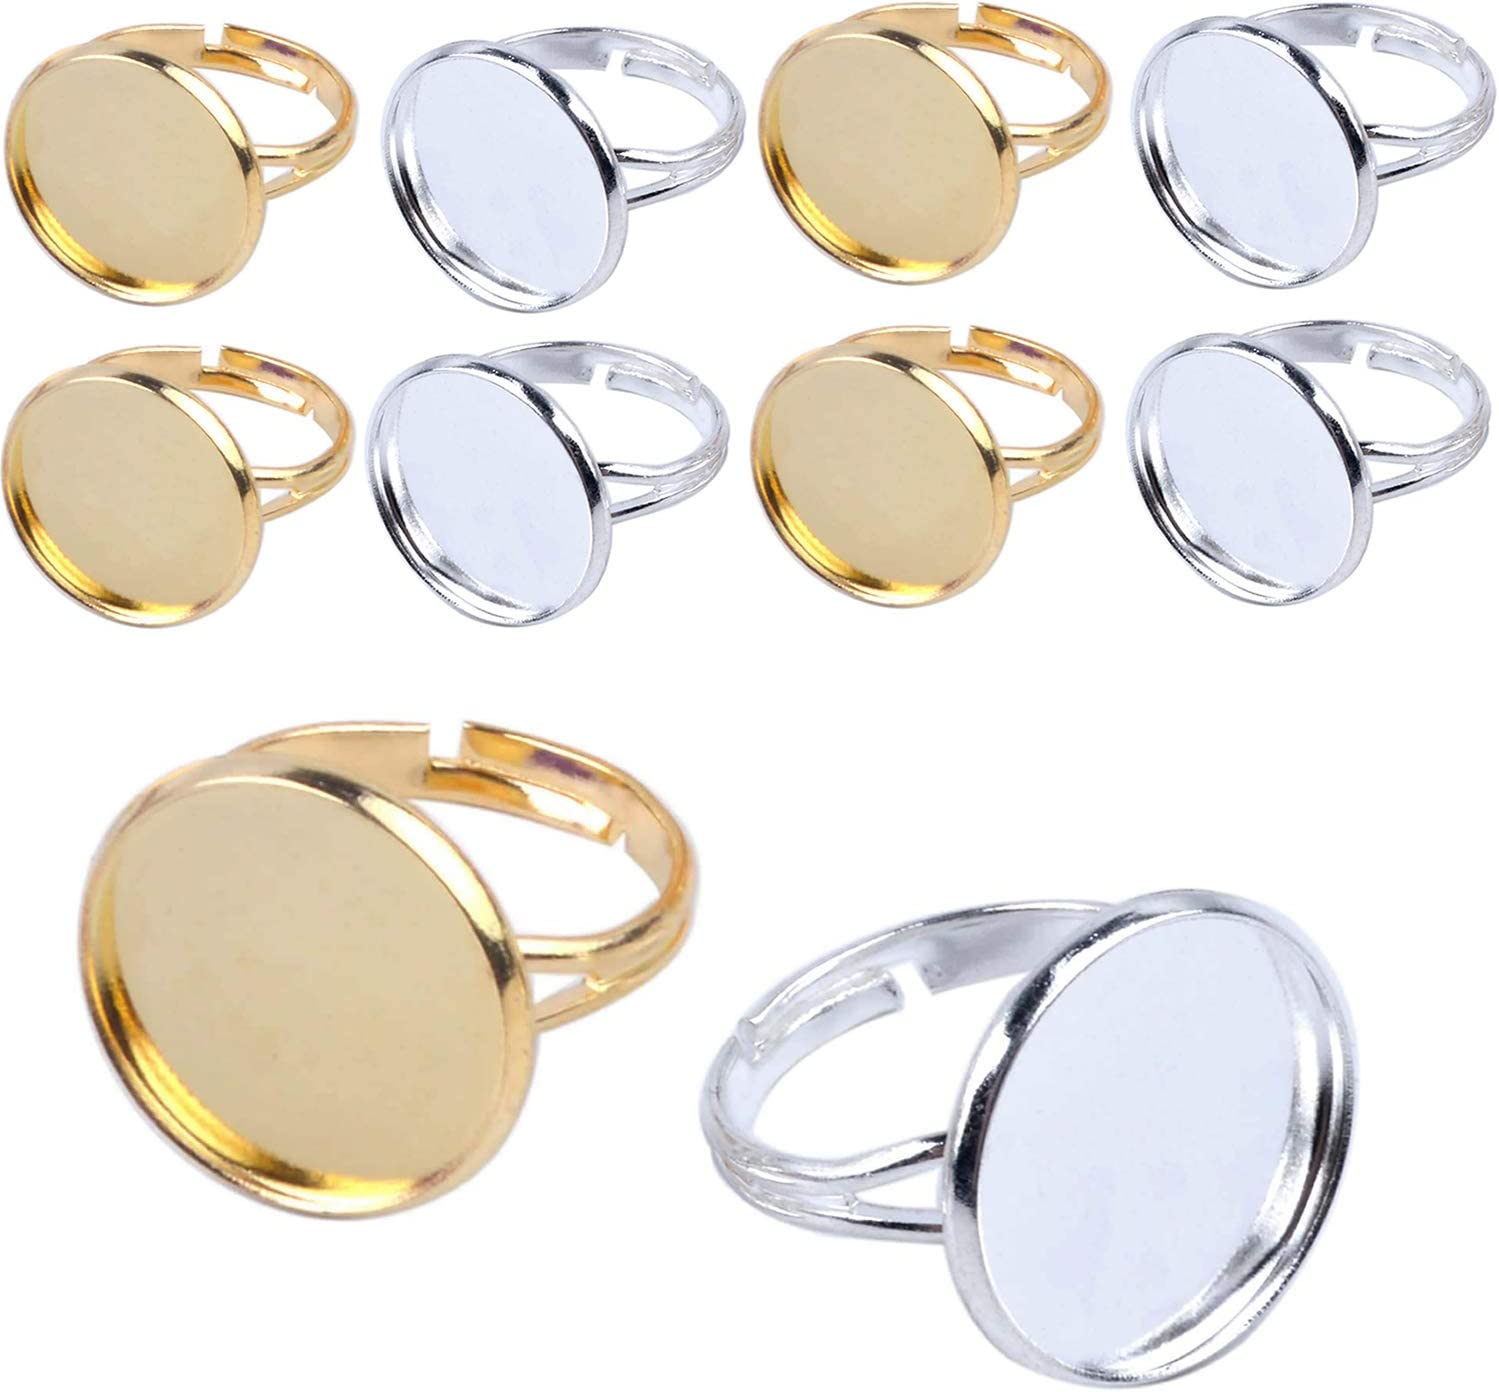 Gold and Silver Plated Jdesun 20 Pieces Ring Blanks with 12mm Adjustable Ring Bases Metal Round Finger Ring Trays